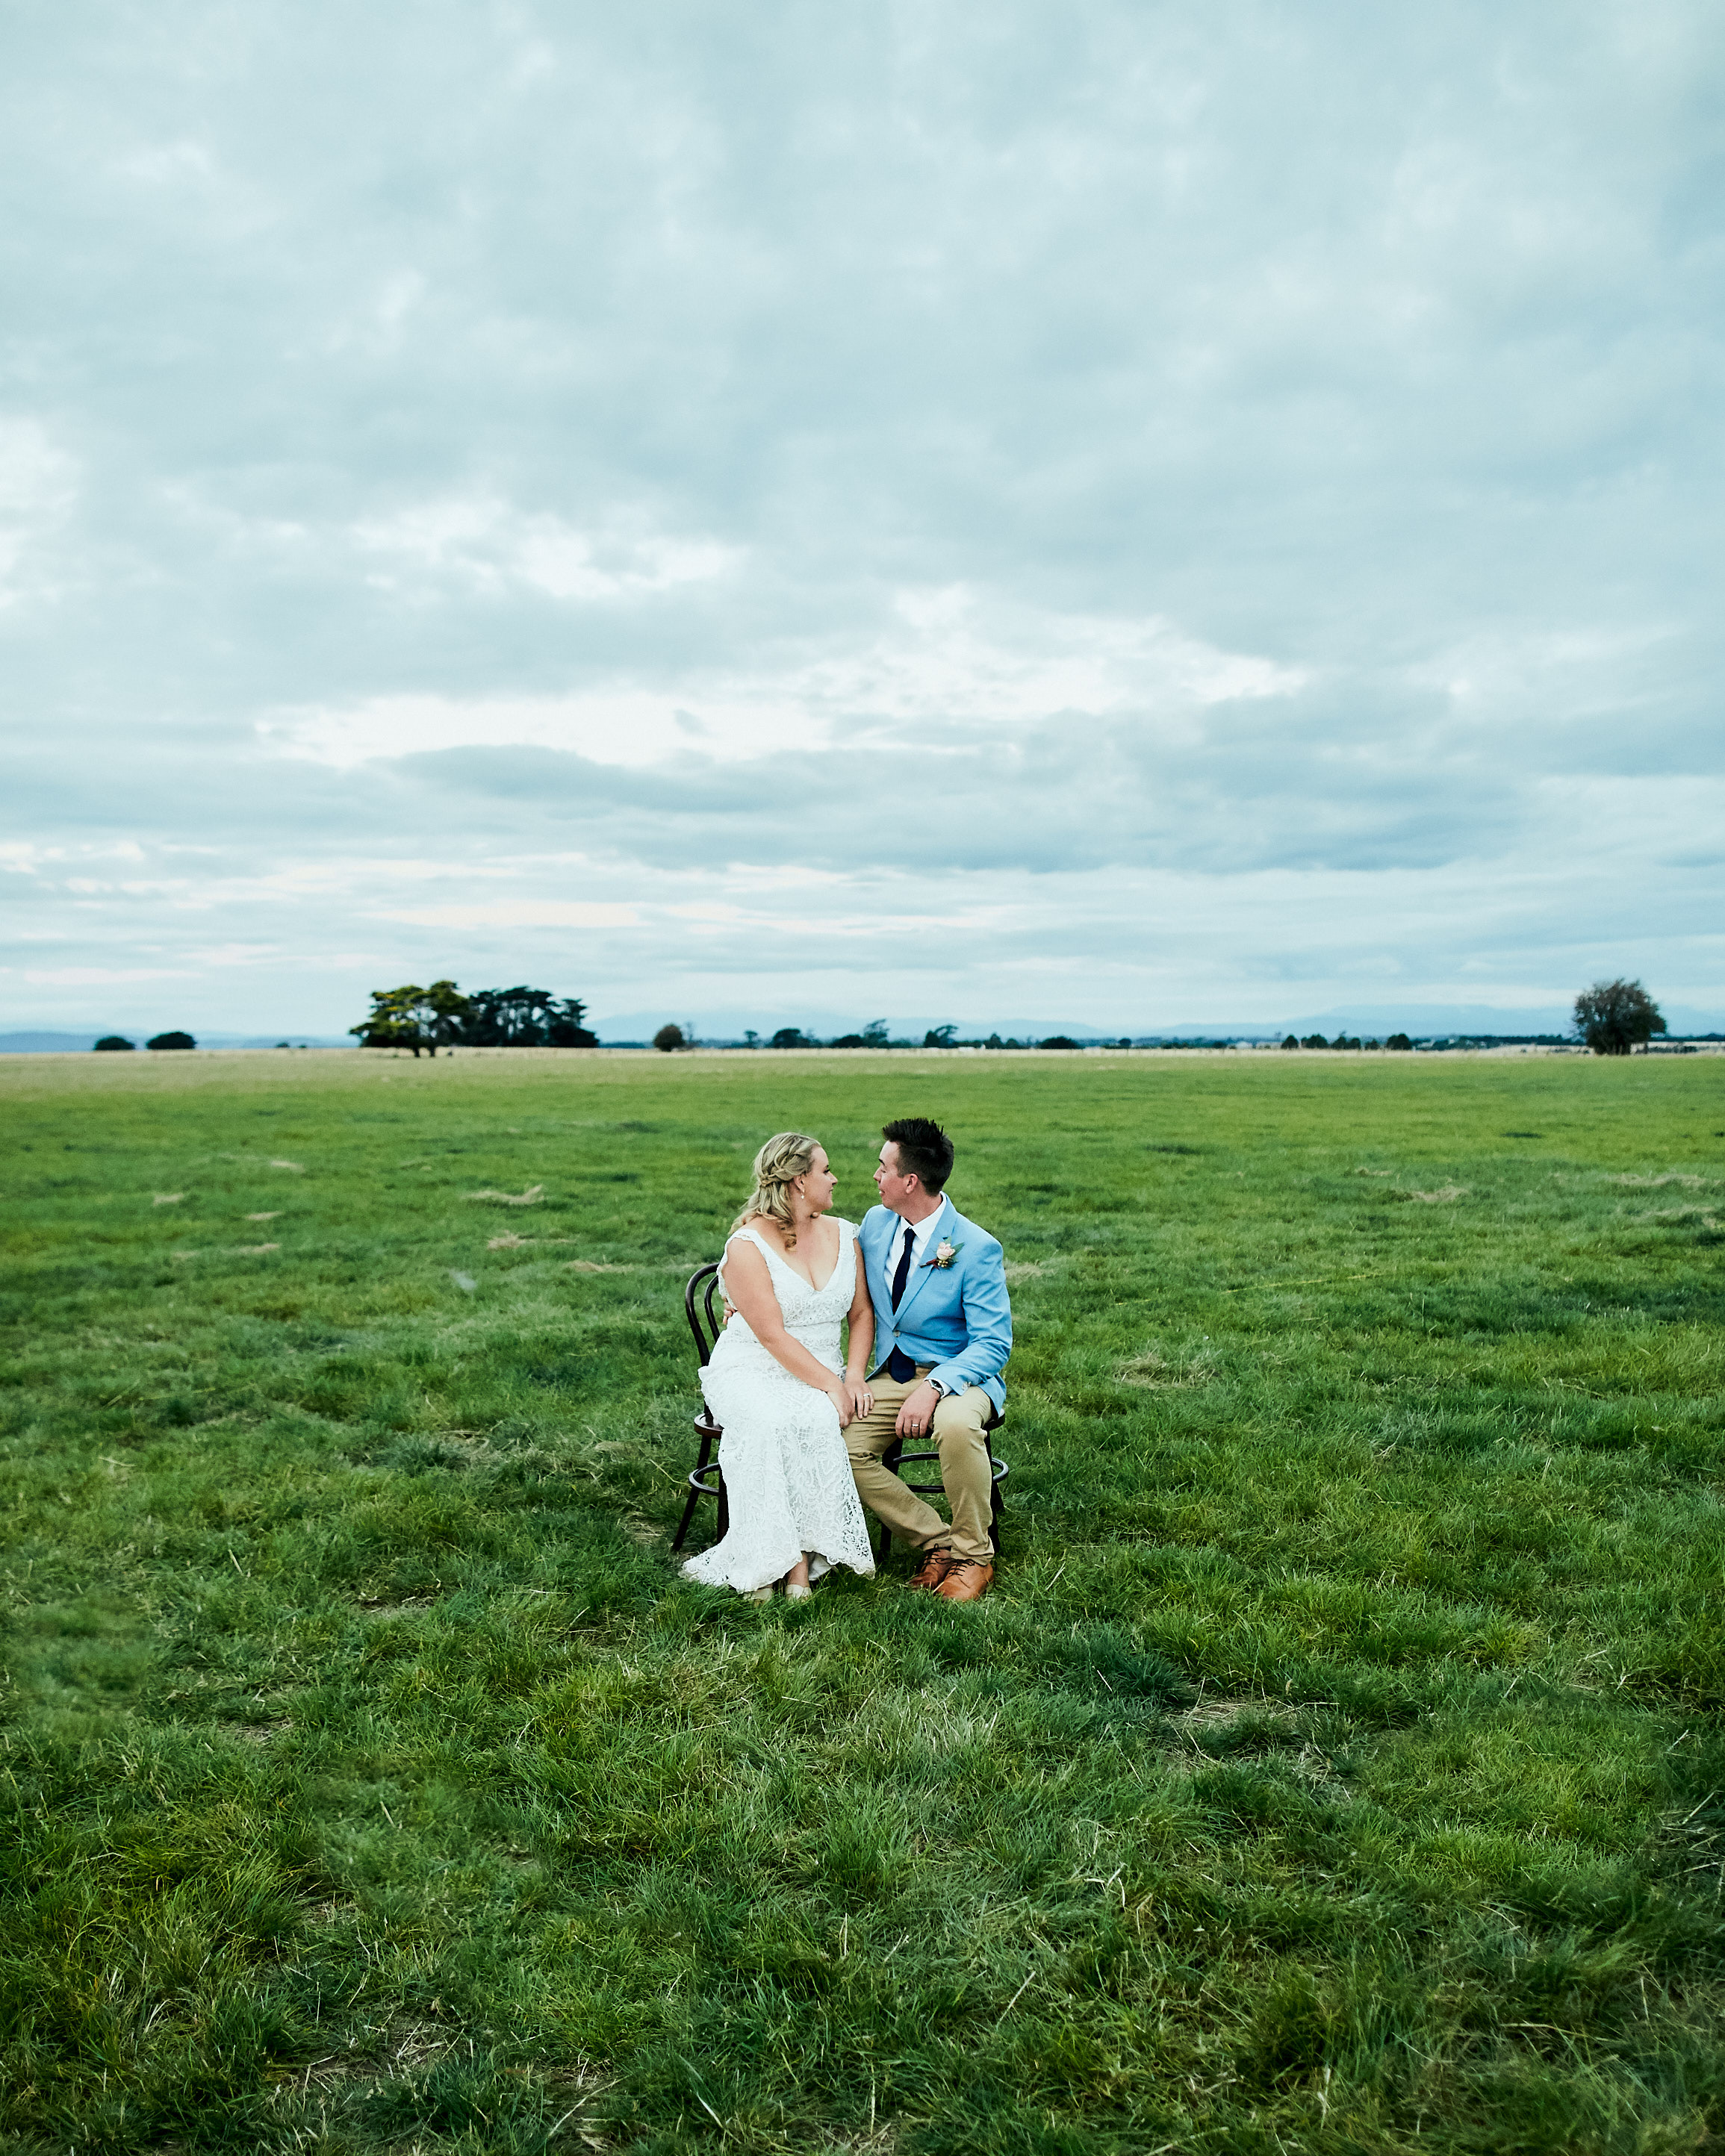 Melbourne-destination-wedding-photographer-launceston-bride-groom